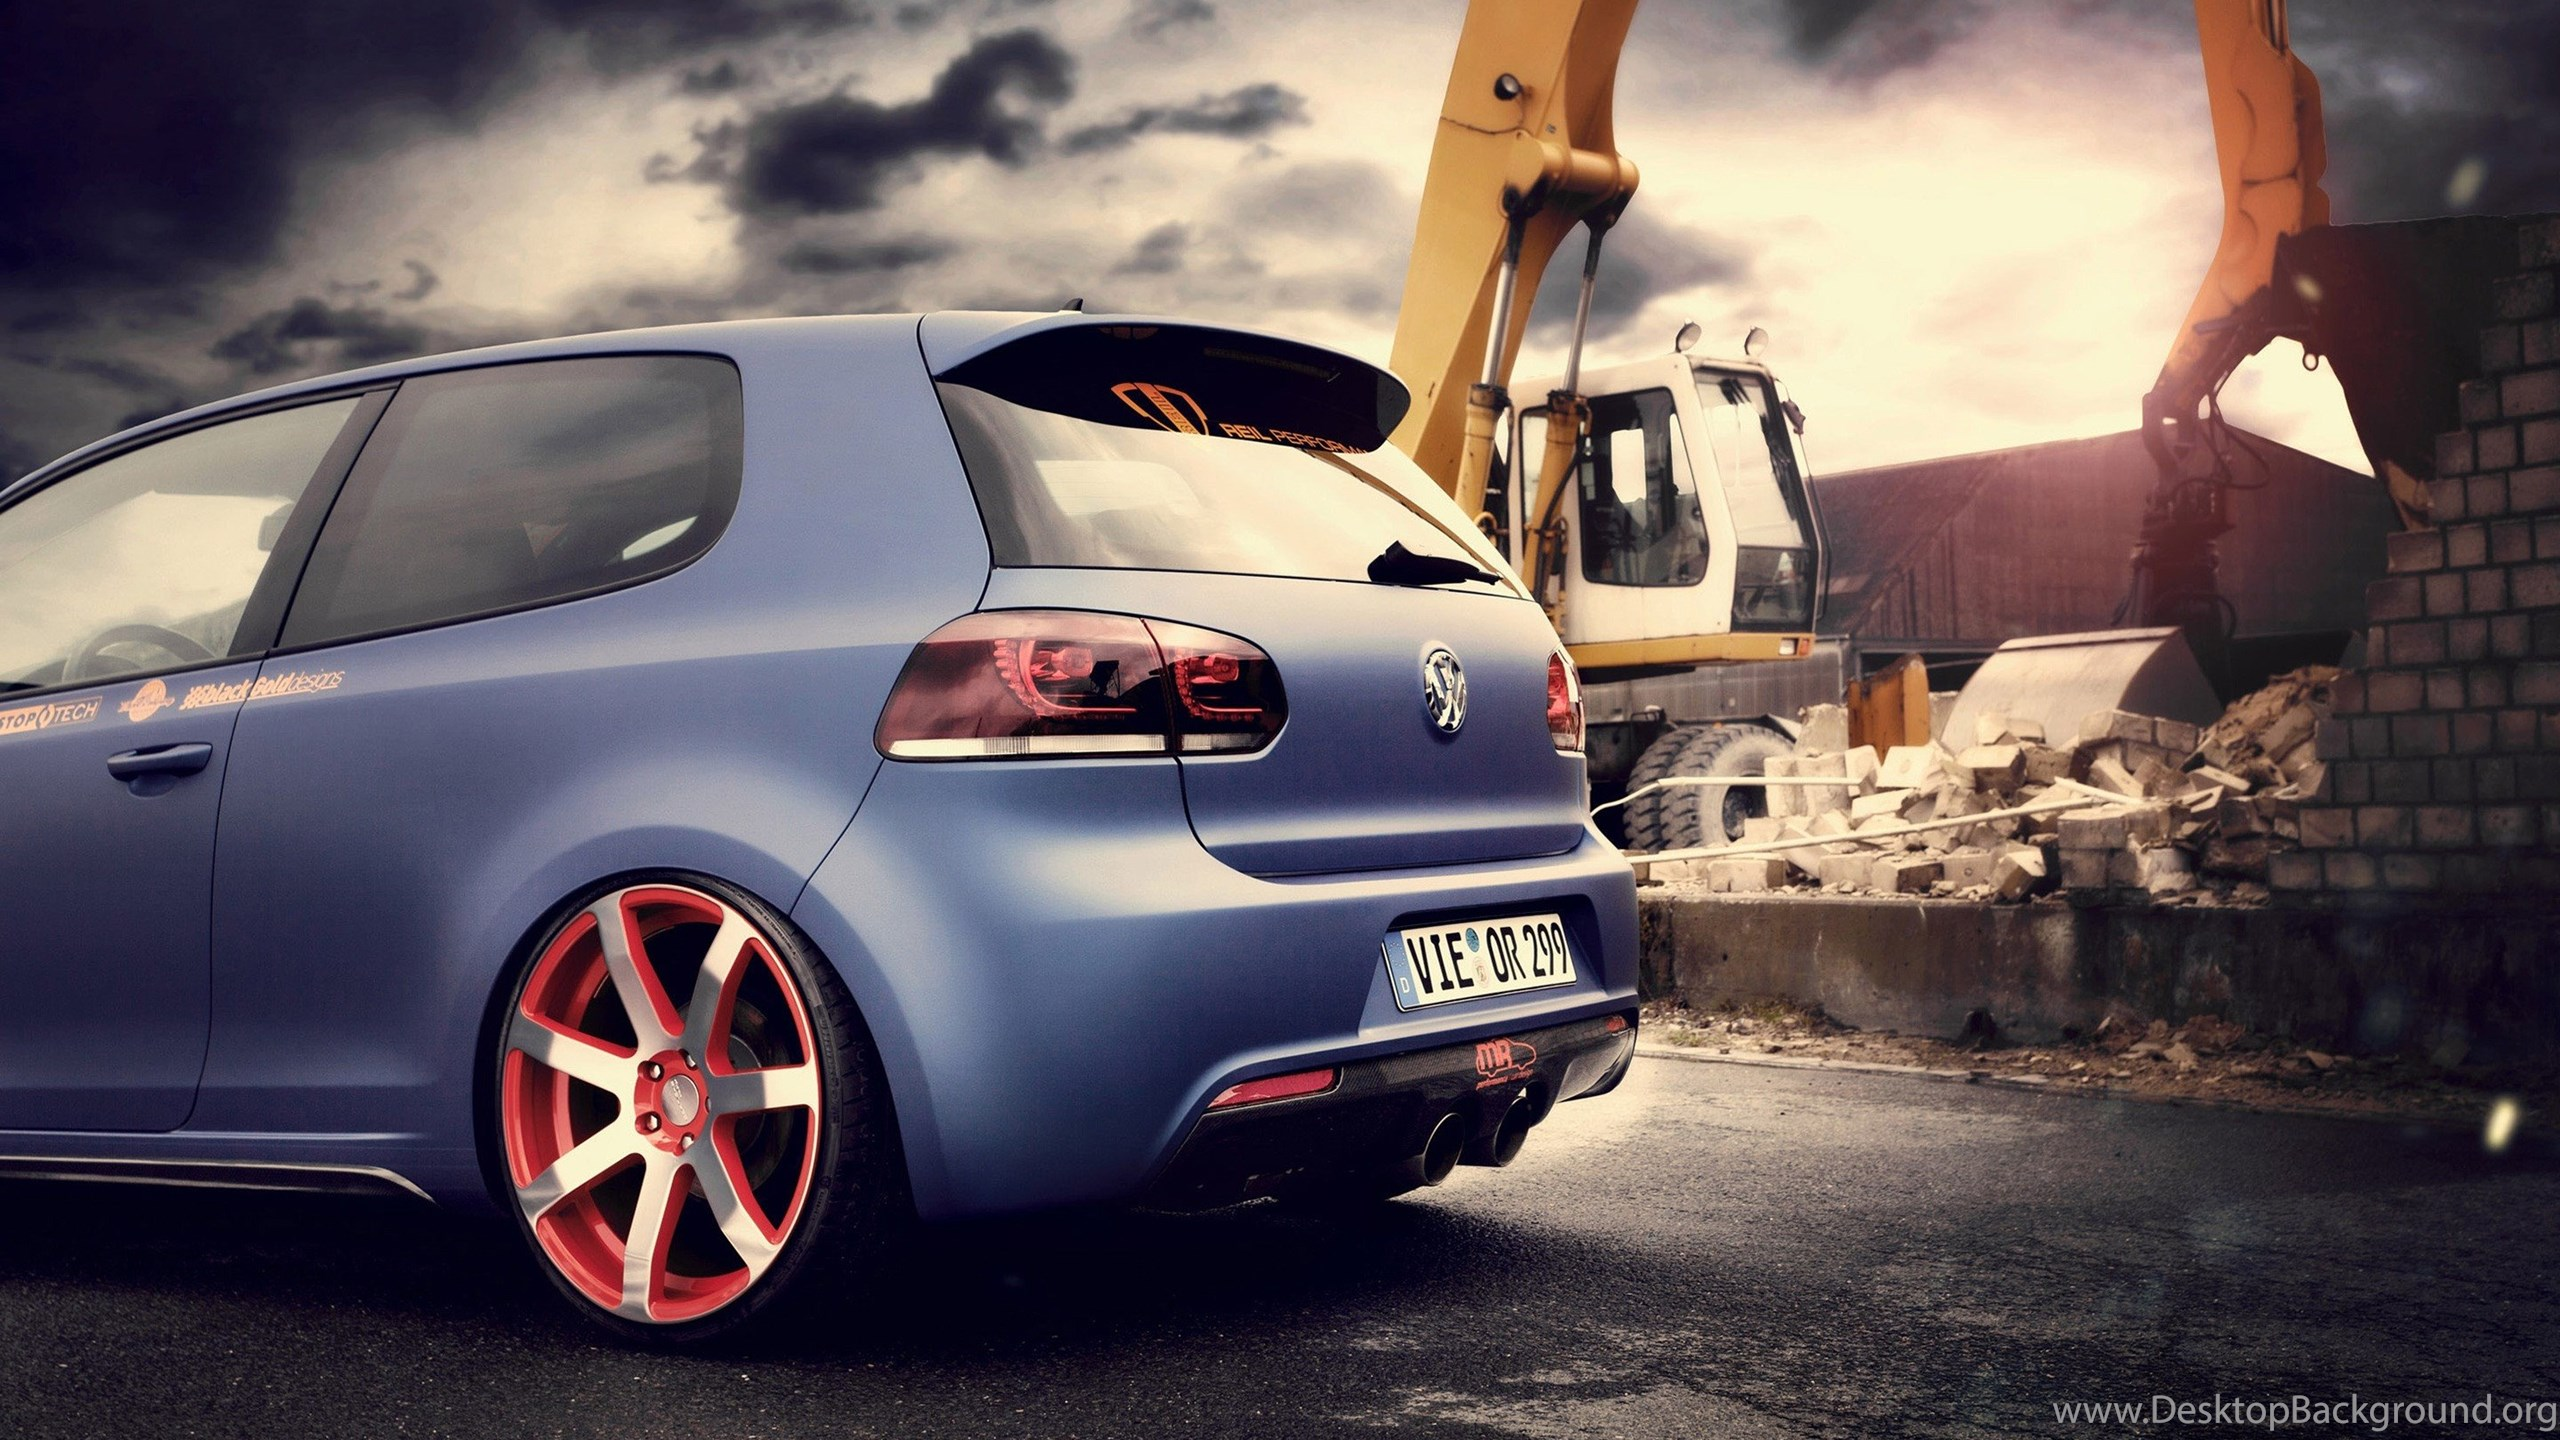 Cars Bbm Vw Golf Rear Tunning Cars Full Hd Wallpapers Cars For Hd